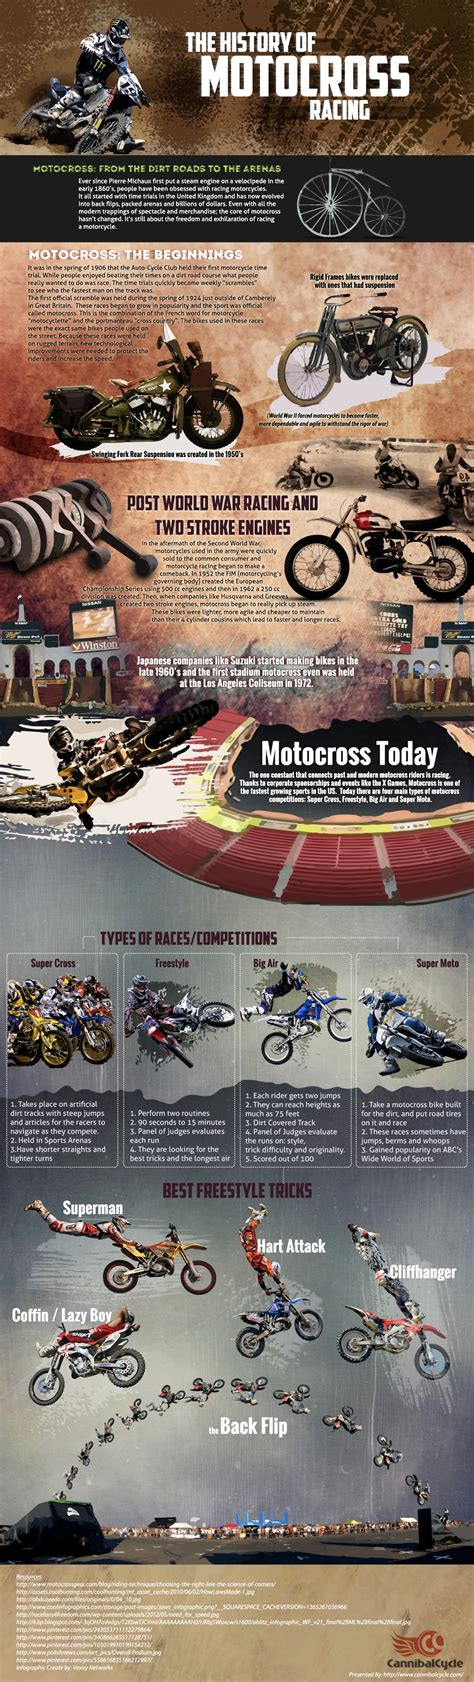 history of motocross racing history of motocross racing infographic